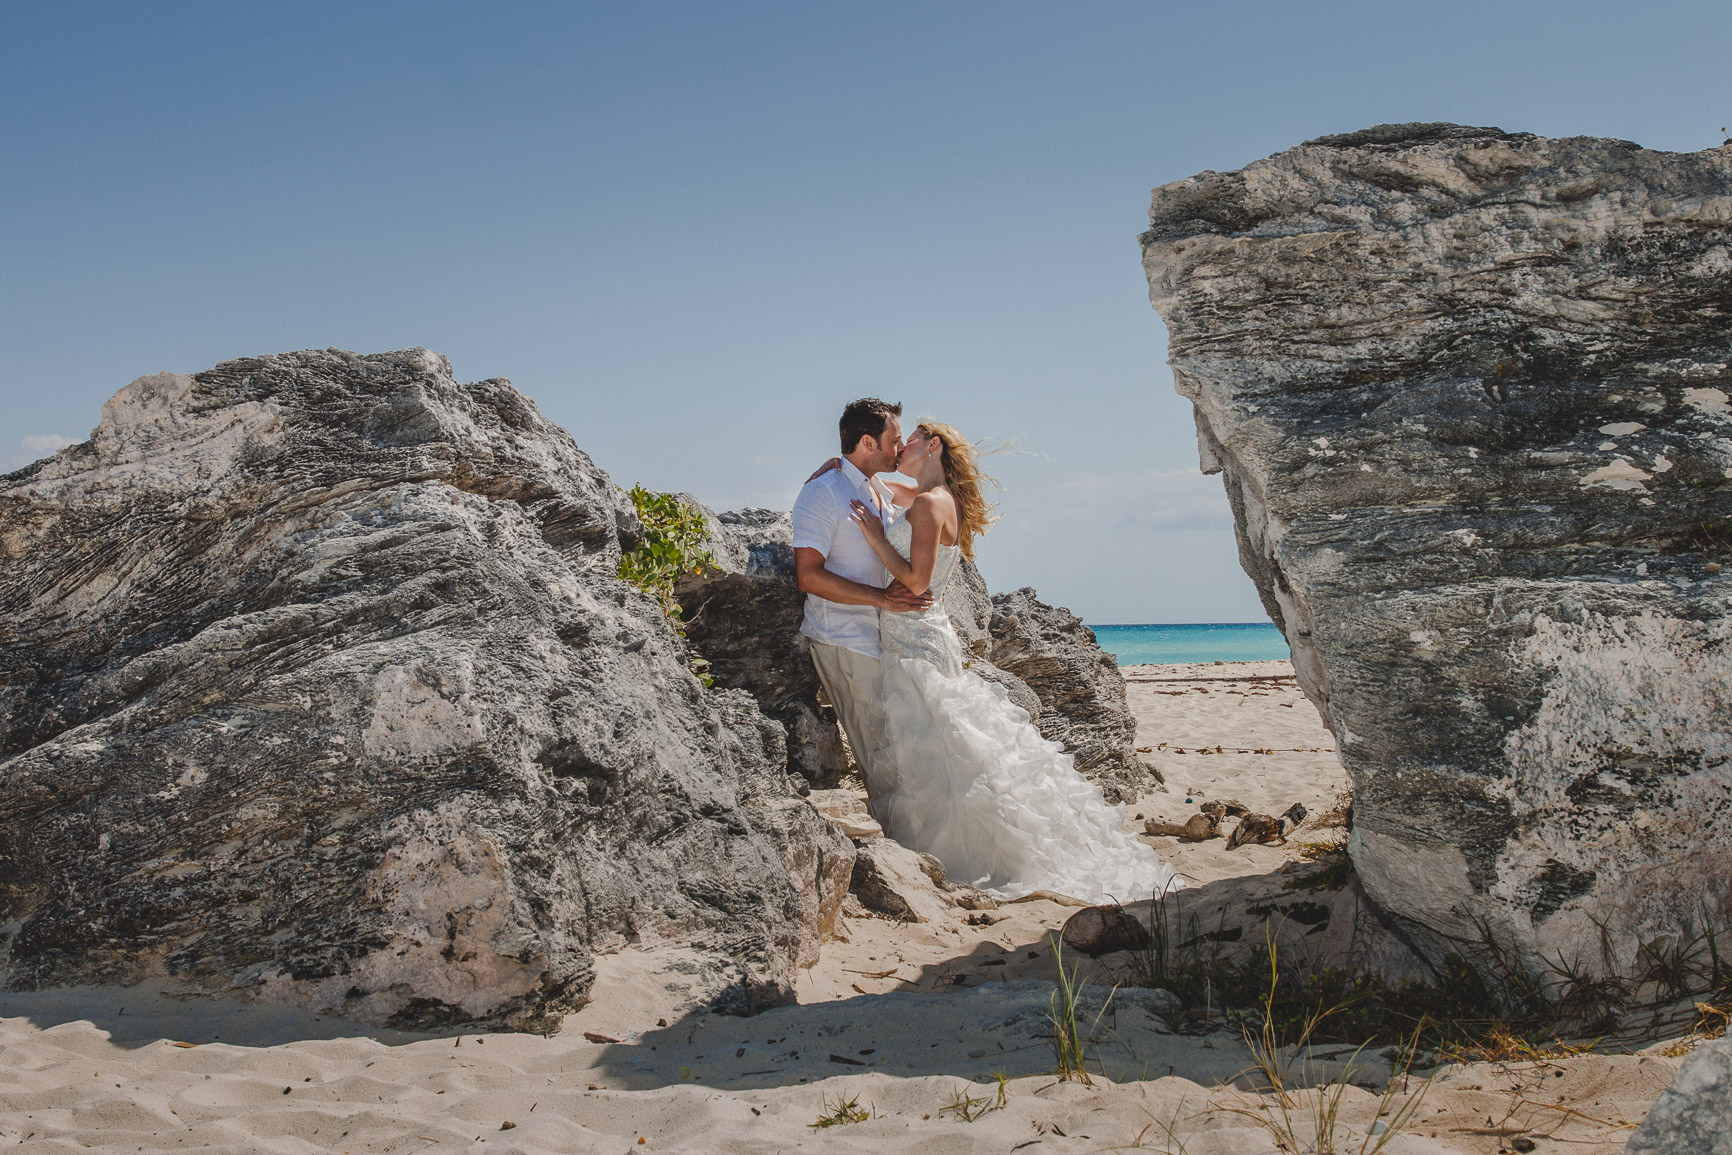 Secluded beach photo session of Bride and Groom